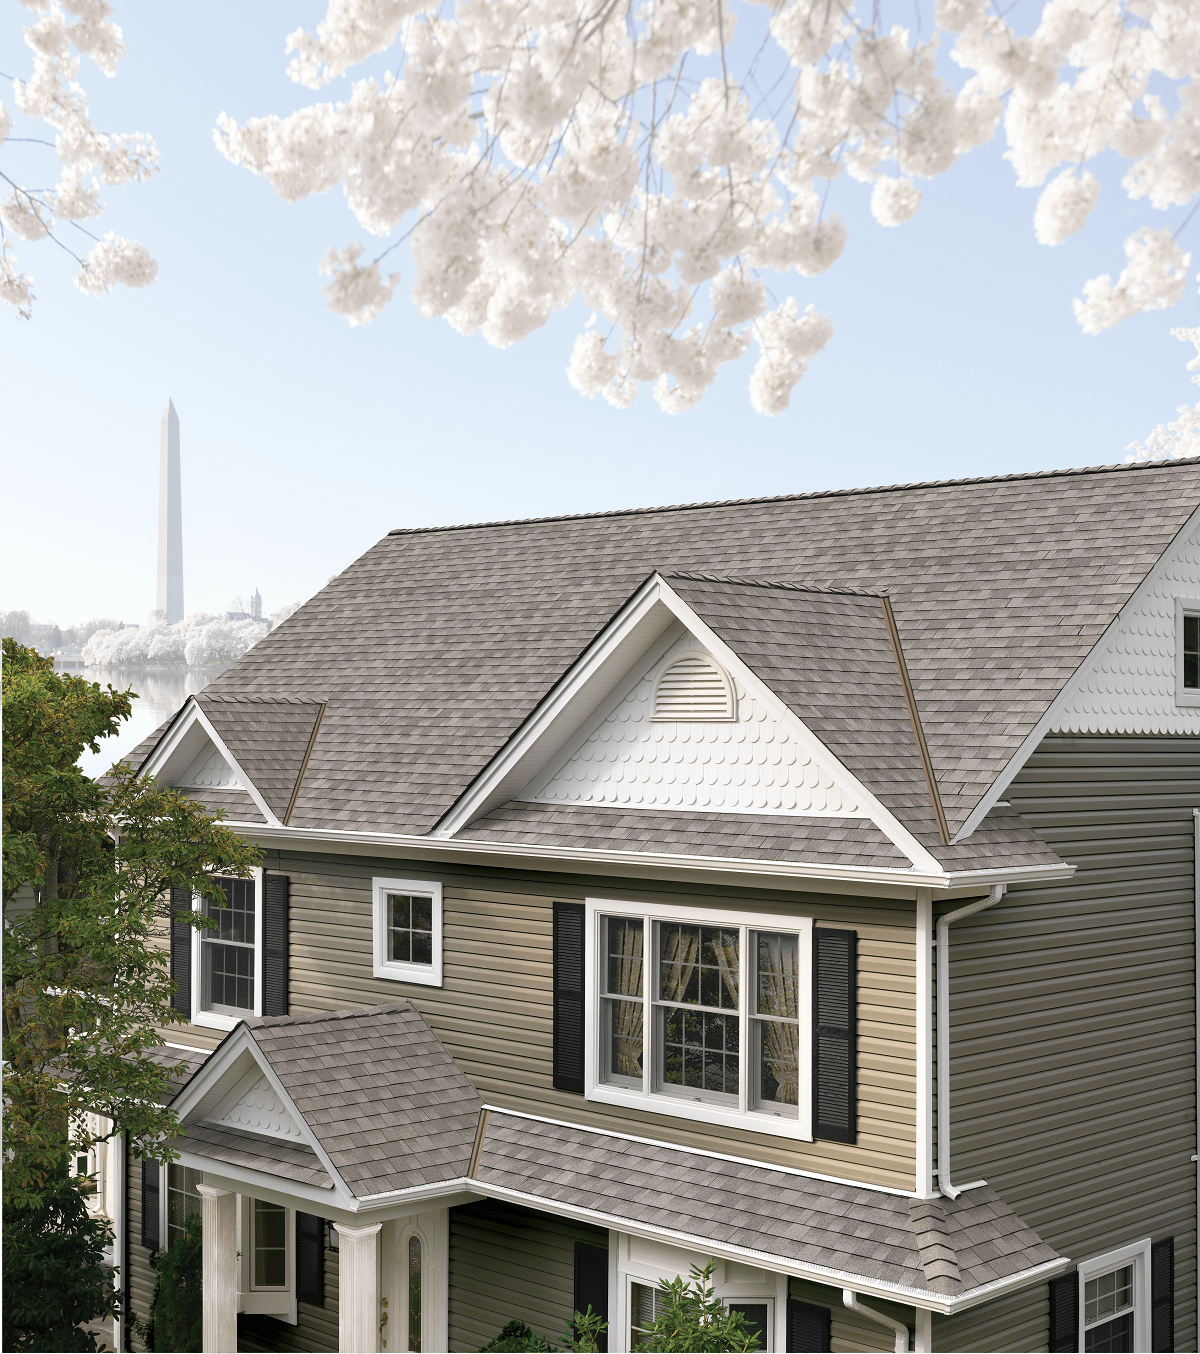 Picture Of A Gable Roof: Top 20 Roof Types: Costs, Design Elements, Pitch, & Shapes